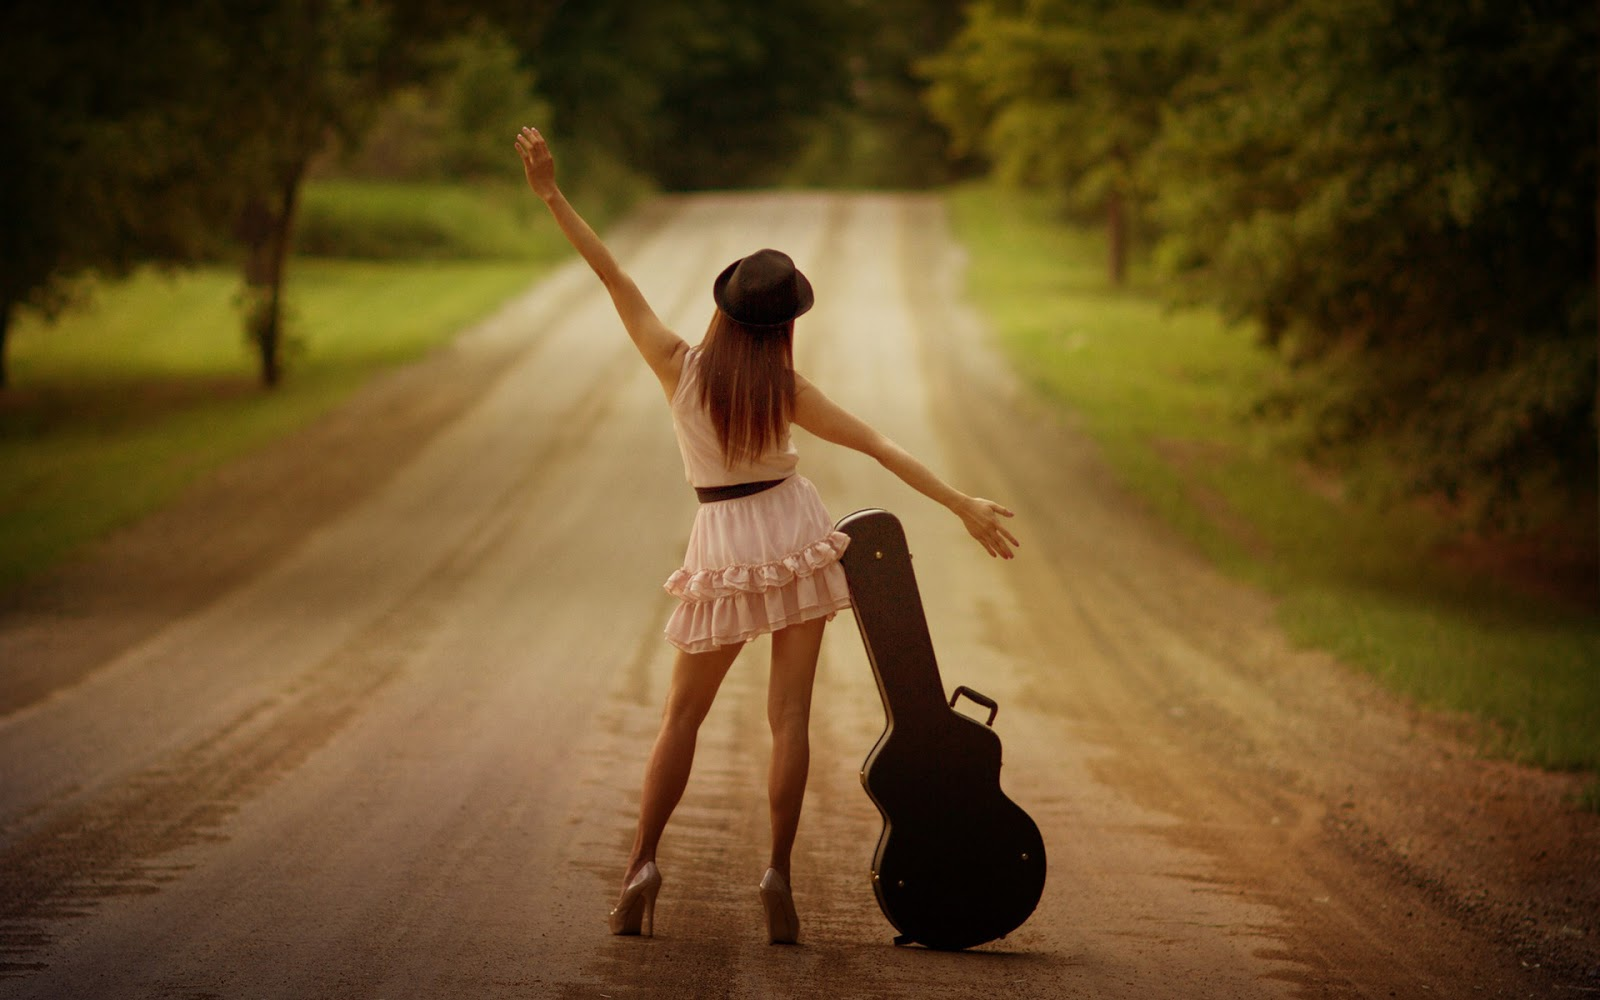 stylish-girls-wallpaper-for-facebook-girl-with-guitar